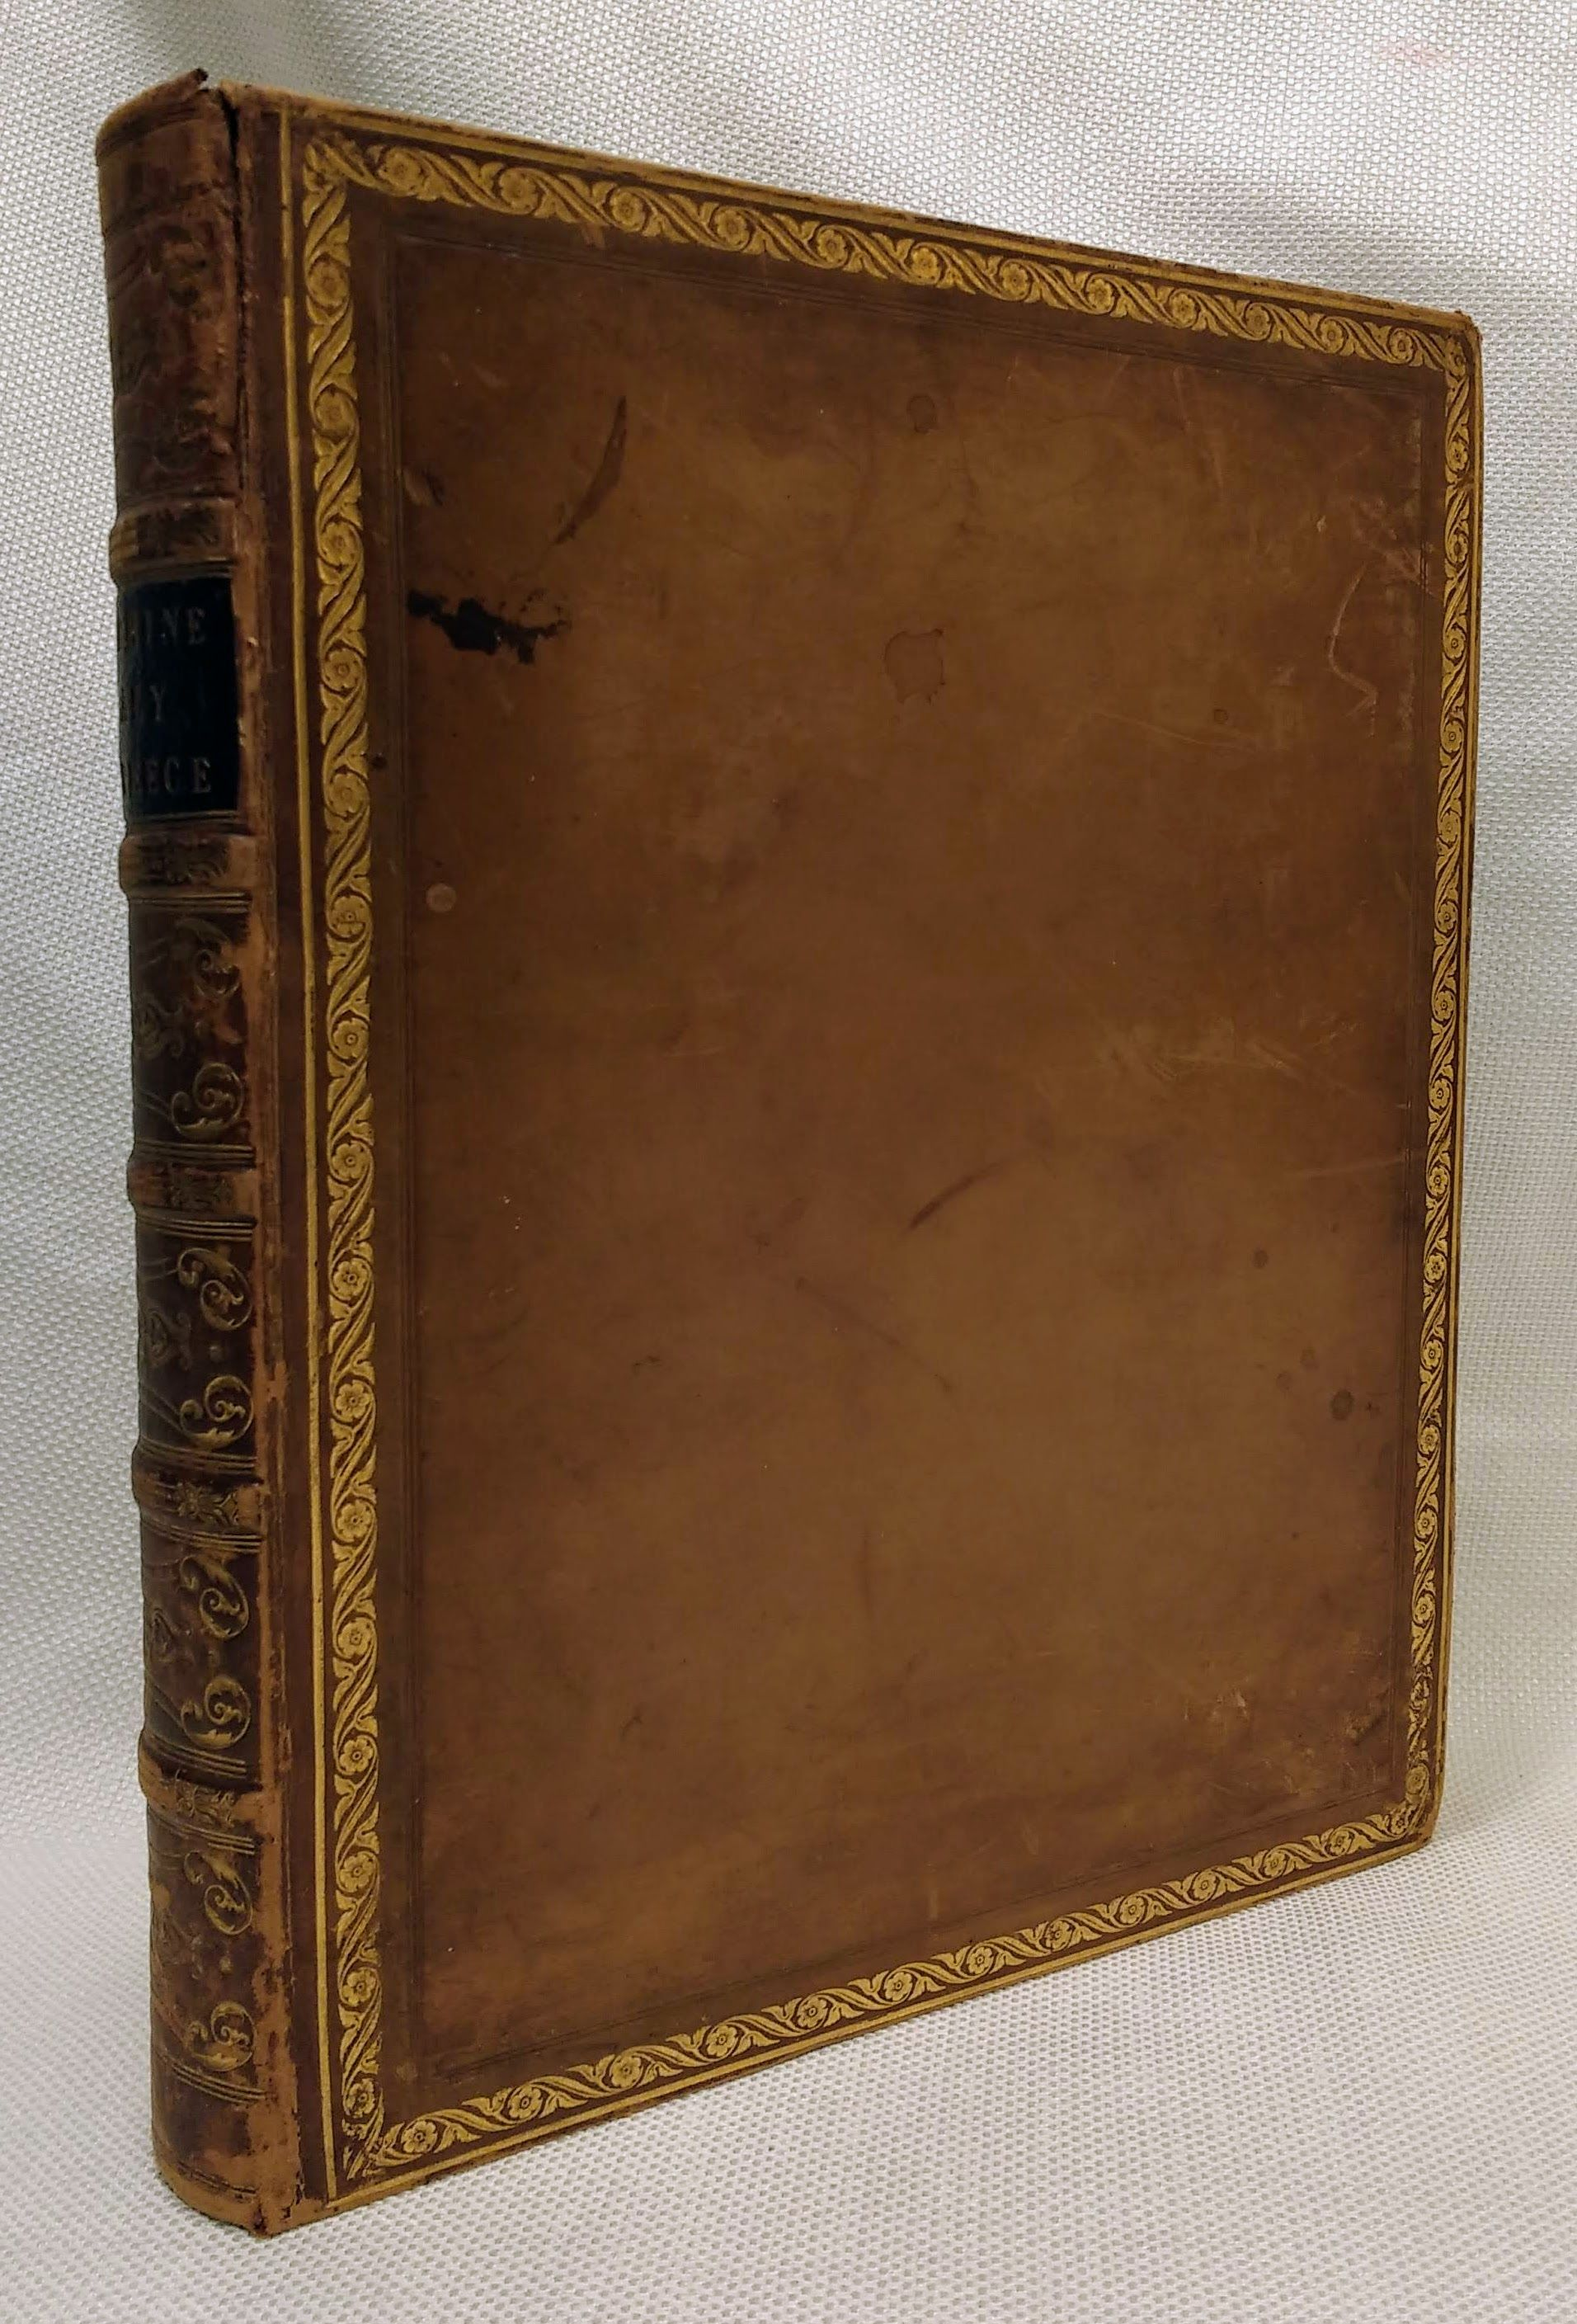 The Rhine, Italy And Greece. In A Series of Drawings From Nature By Colonel Cockburn, Major Irton, Messrs. Bartlett, et al. [2 volumes in one, fine leather binding], Wright, Rev G. N., Illustrated by Cockburn, Colonel; Irton, Major; Bartlett; Lei